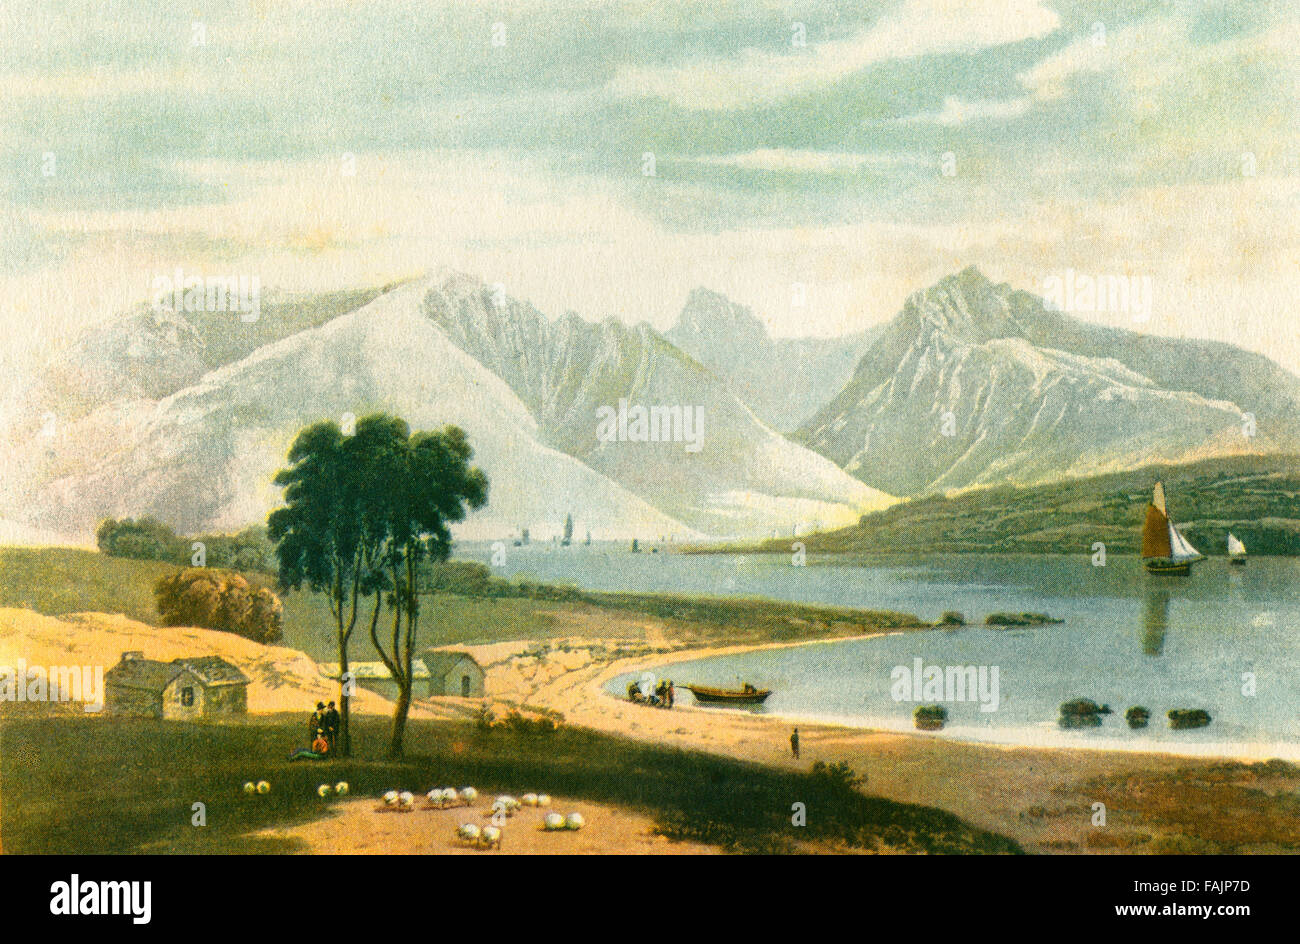 View of The Isle of Arran, Firth of Clyde, Scotland, from Ardrossan in 1820. After the aquatint by William Daniell. - Stock Image